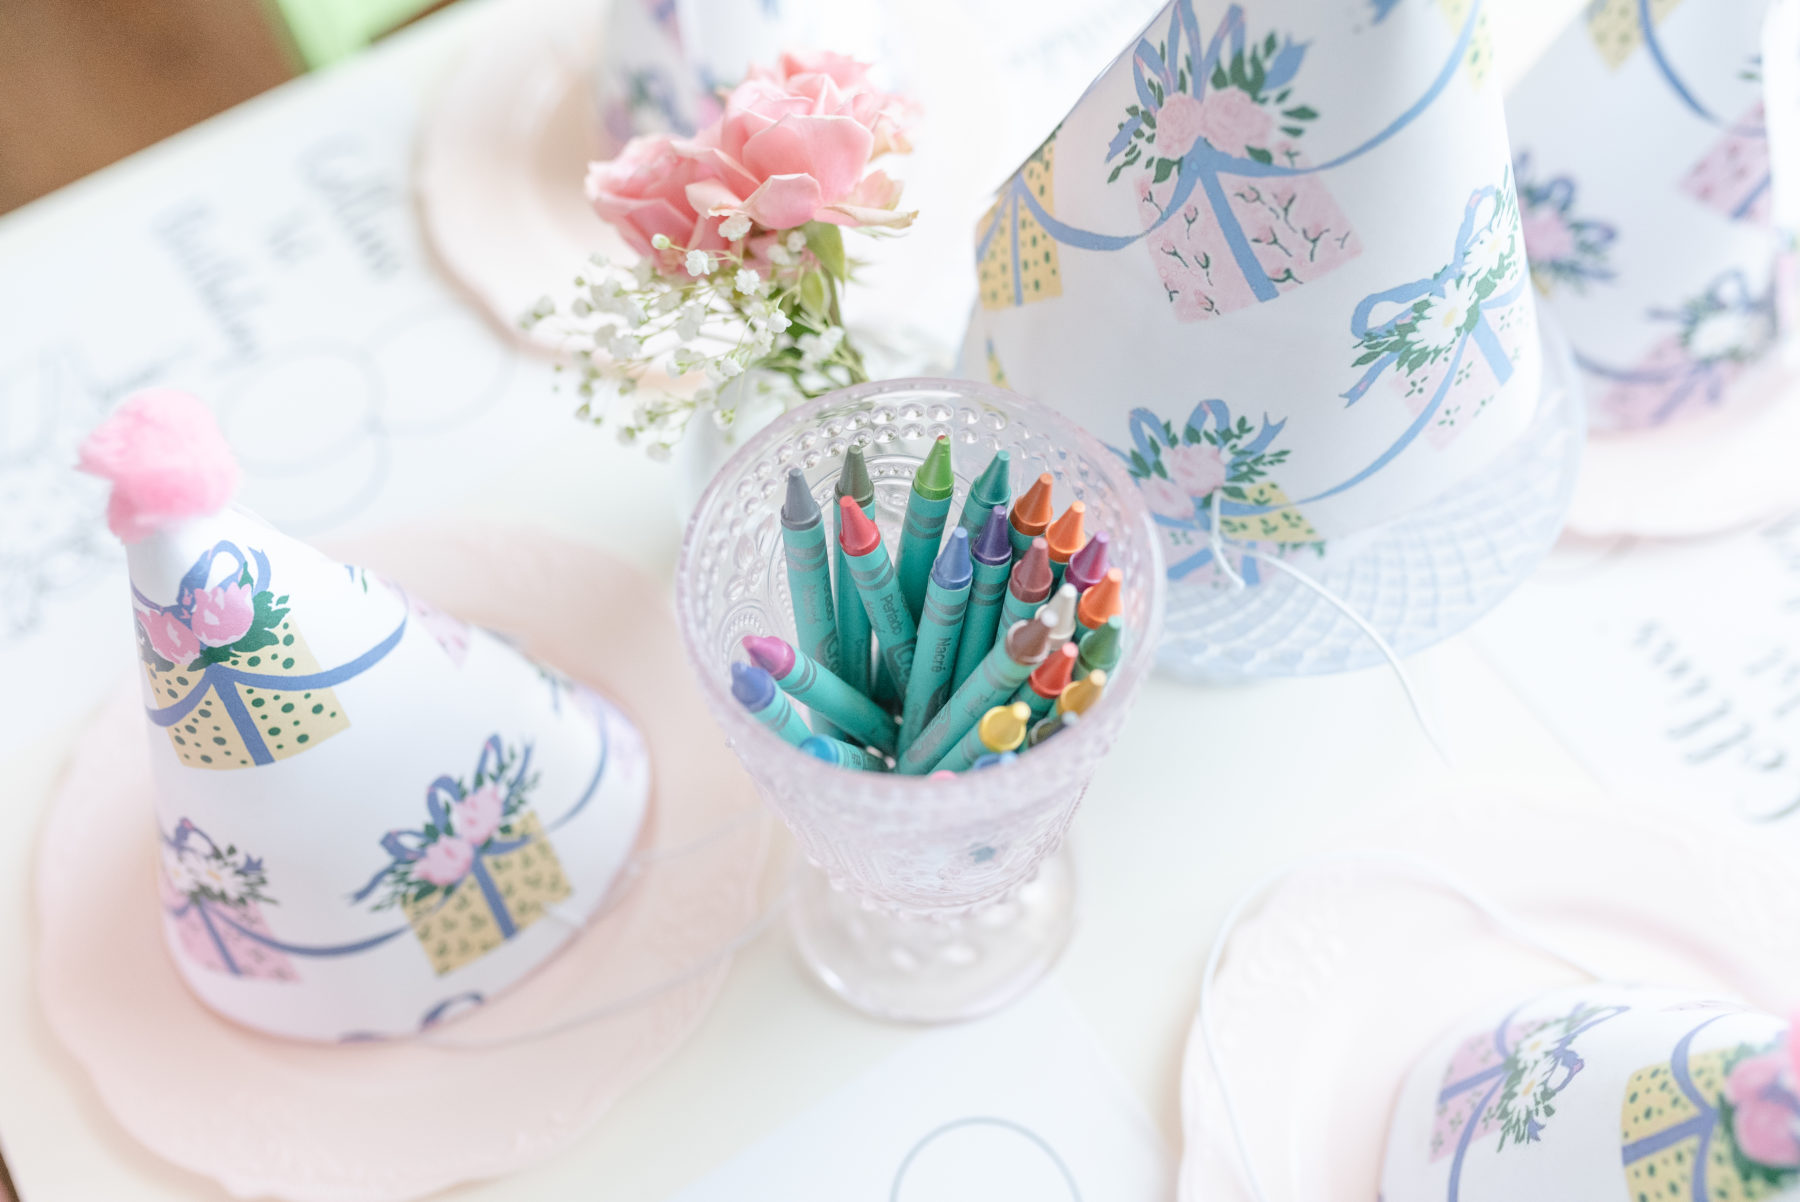 Kids Table Decor: Dolly Delong Photography featured on Nashville Bride Guide